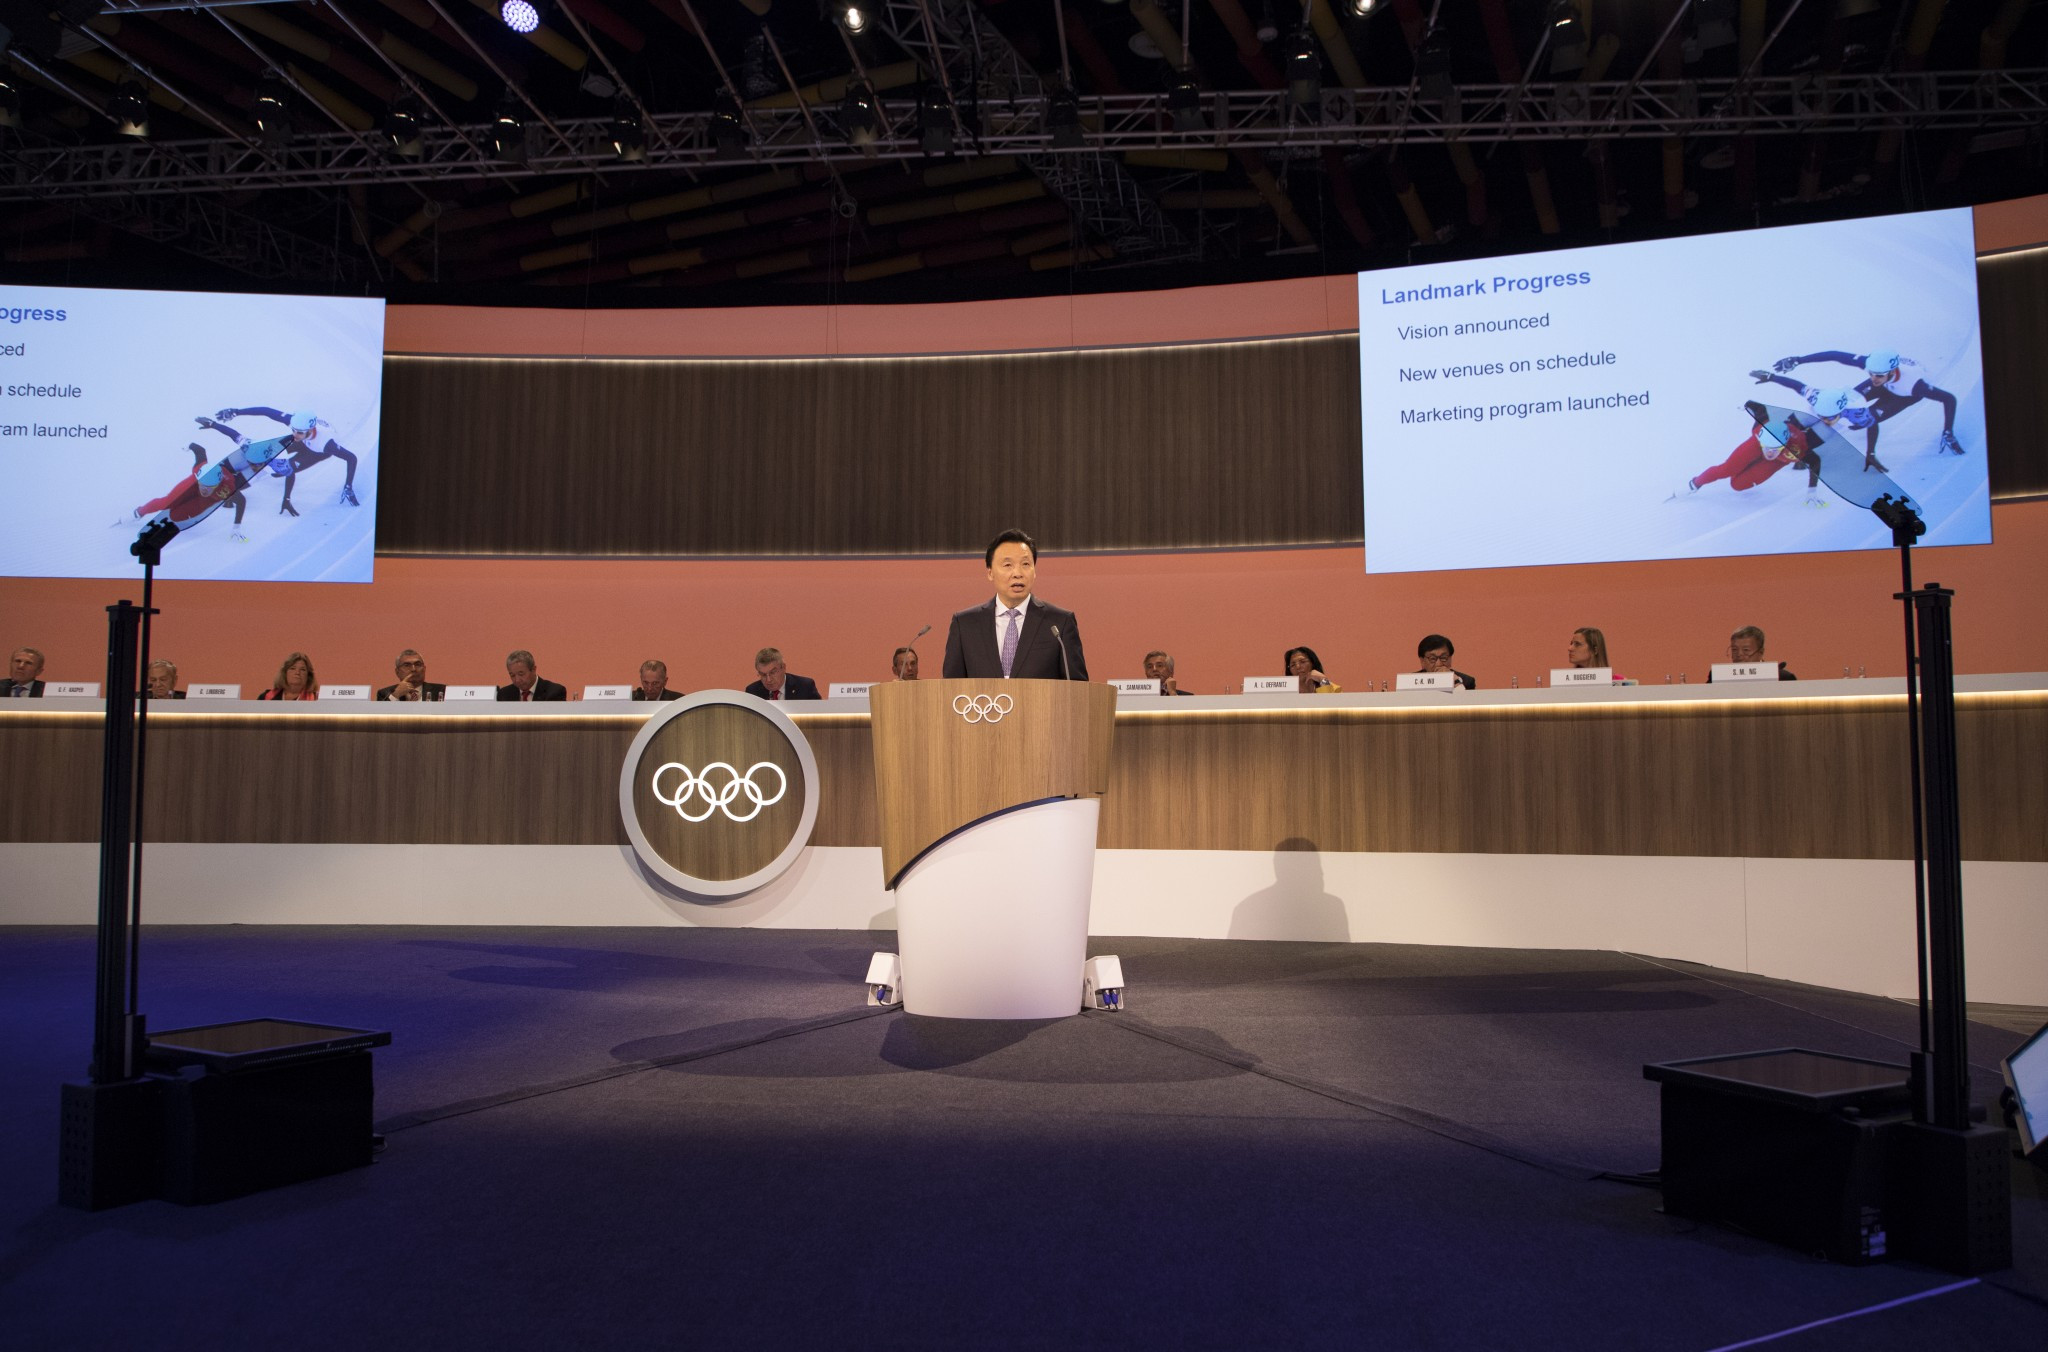 Beijing 2022 delivered a progress work to the IOC Session ©IOC